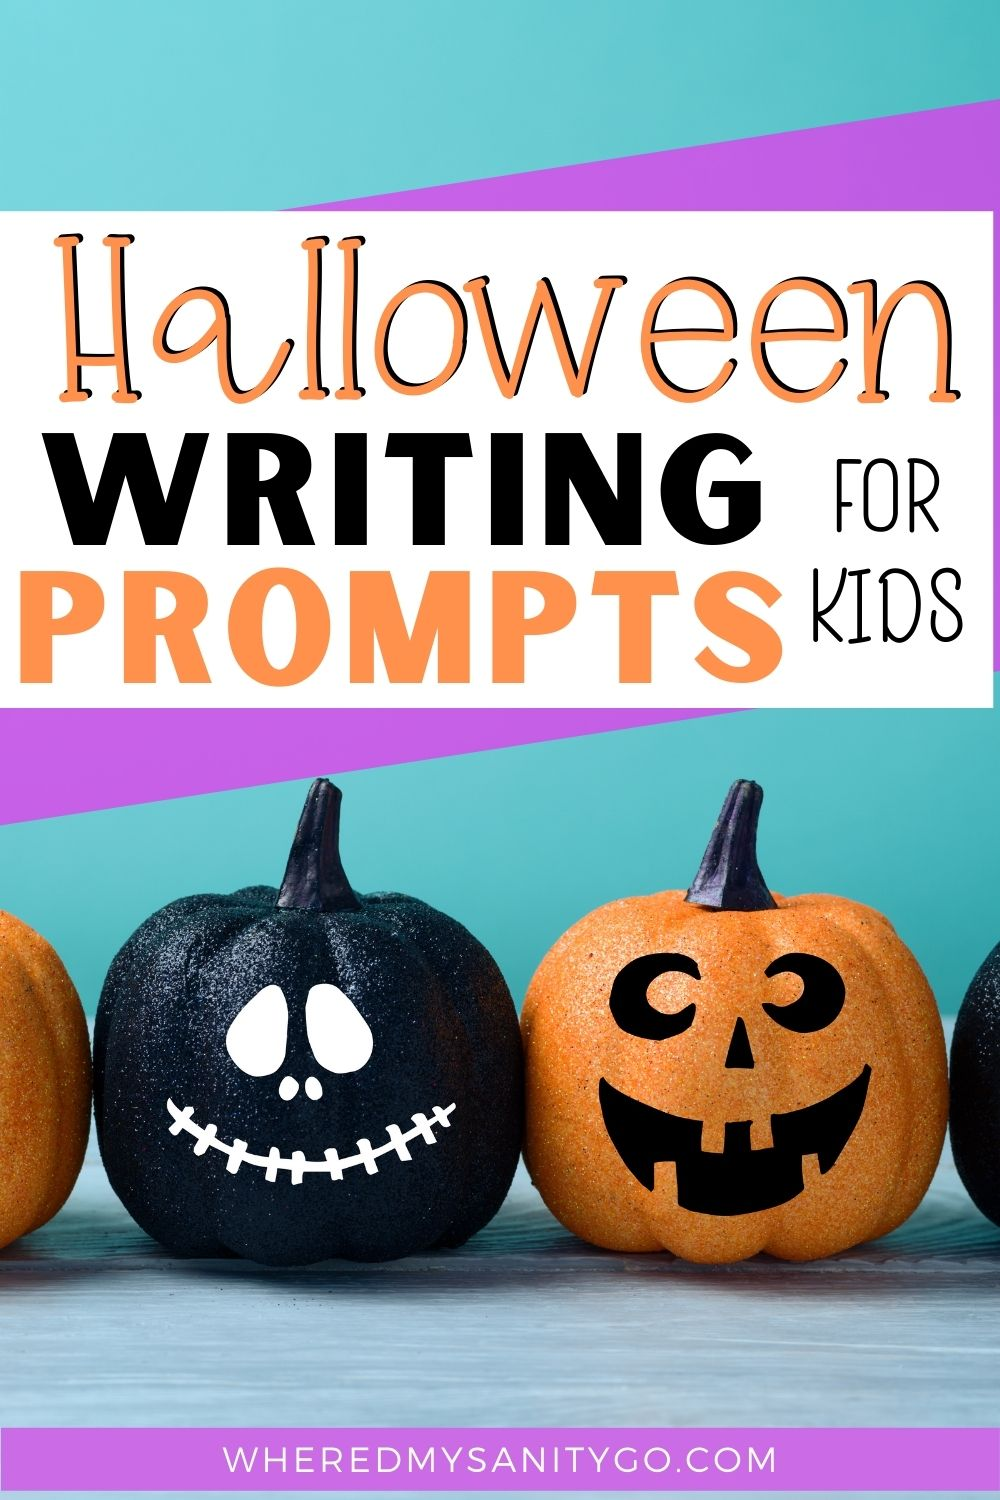 Halloween Writing Prompts That Are Spooky and Fun